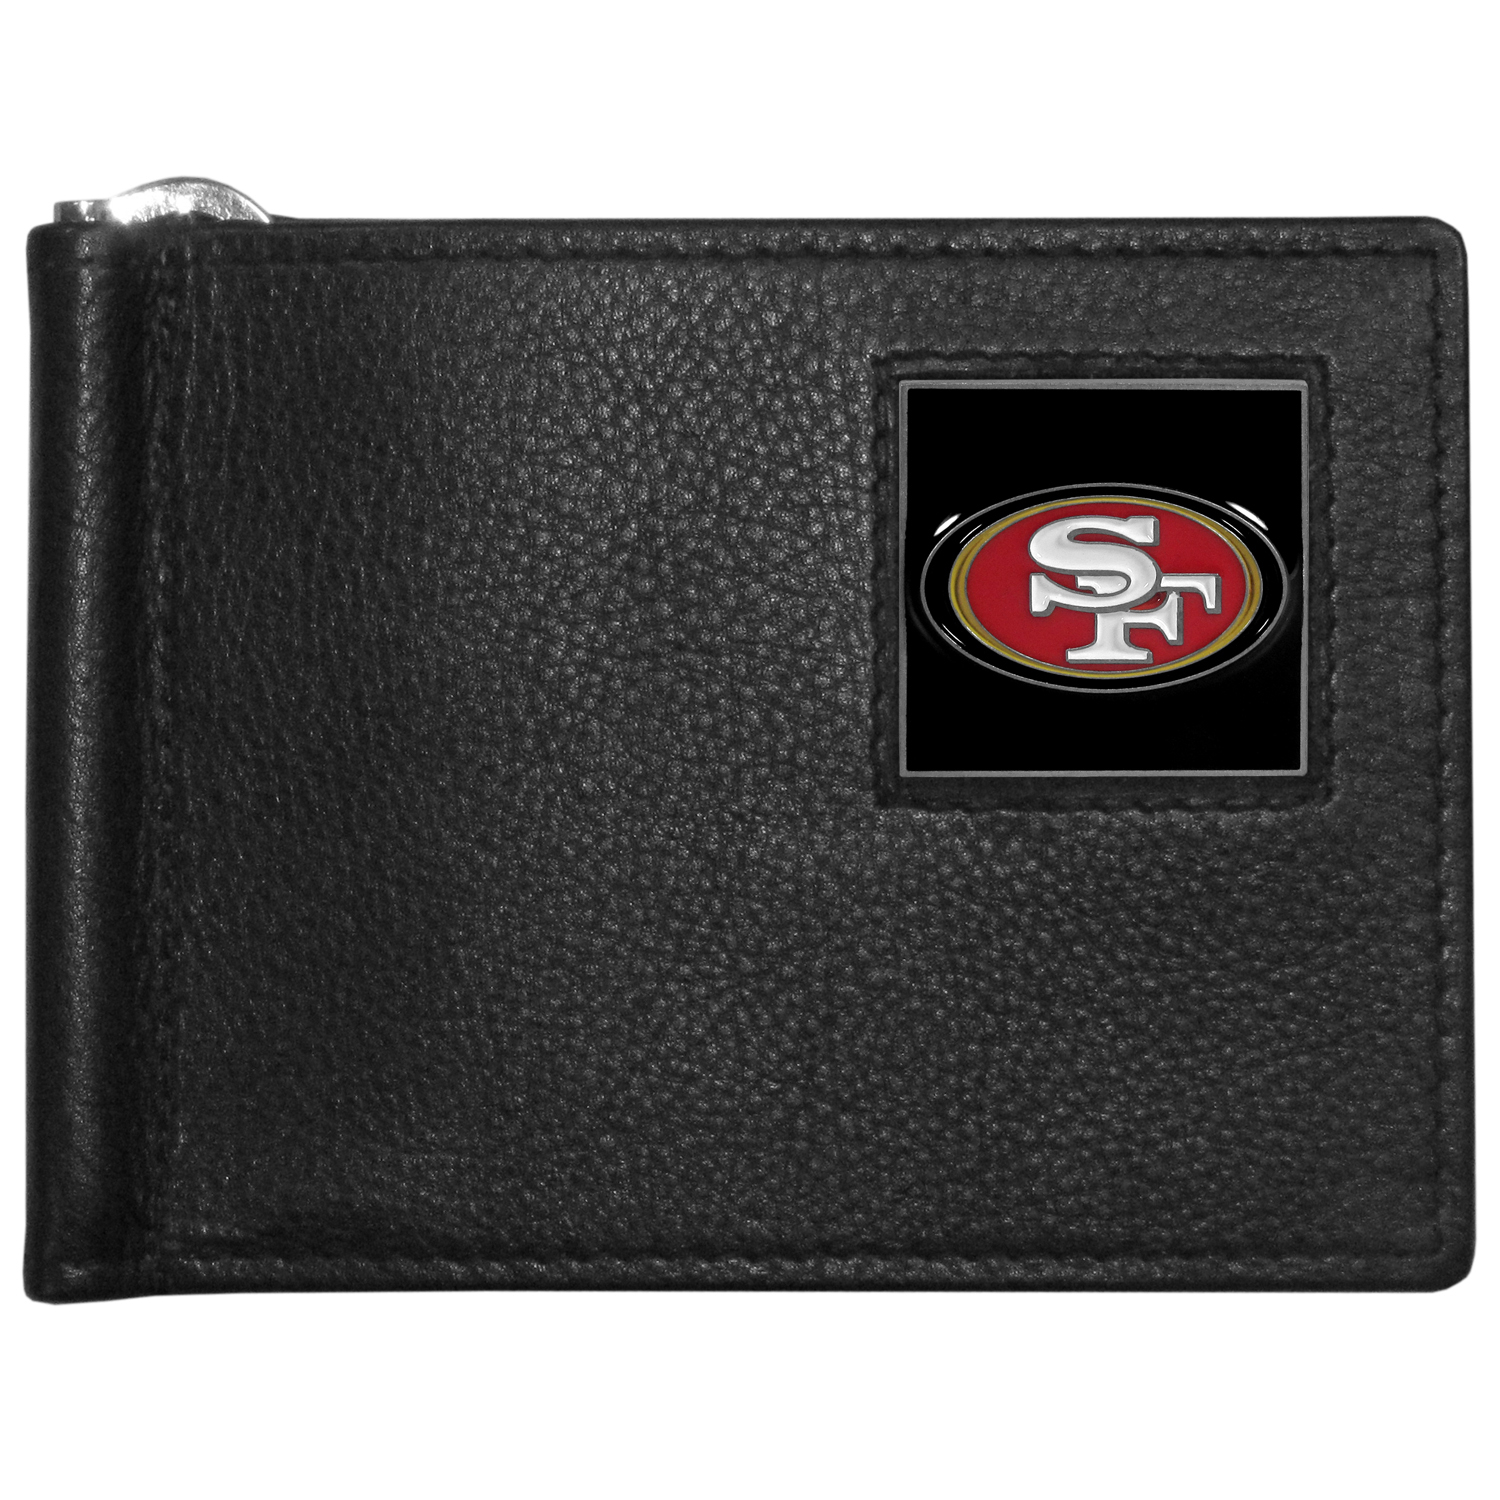 San Francisco 49ers Leather Bill Clip Wallet - This cool new style wallet features an inner, metal bill clip that lips up for easy access. The super slim wallet holds tons of stuff with ample pockets, credit card slots & windowed ID slot.  The wallet is made of genuine fine grain leather and it finished with a metal San Francisco 49ers emblem. The wallet is shipped in gift box packaging.